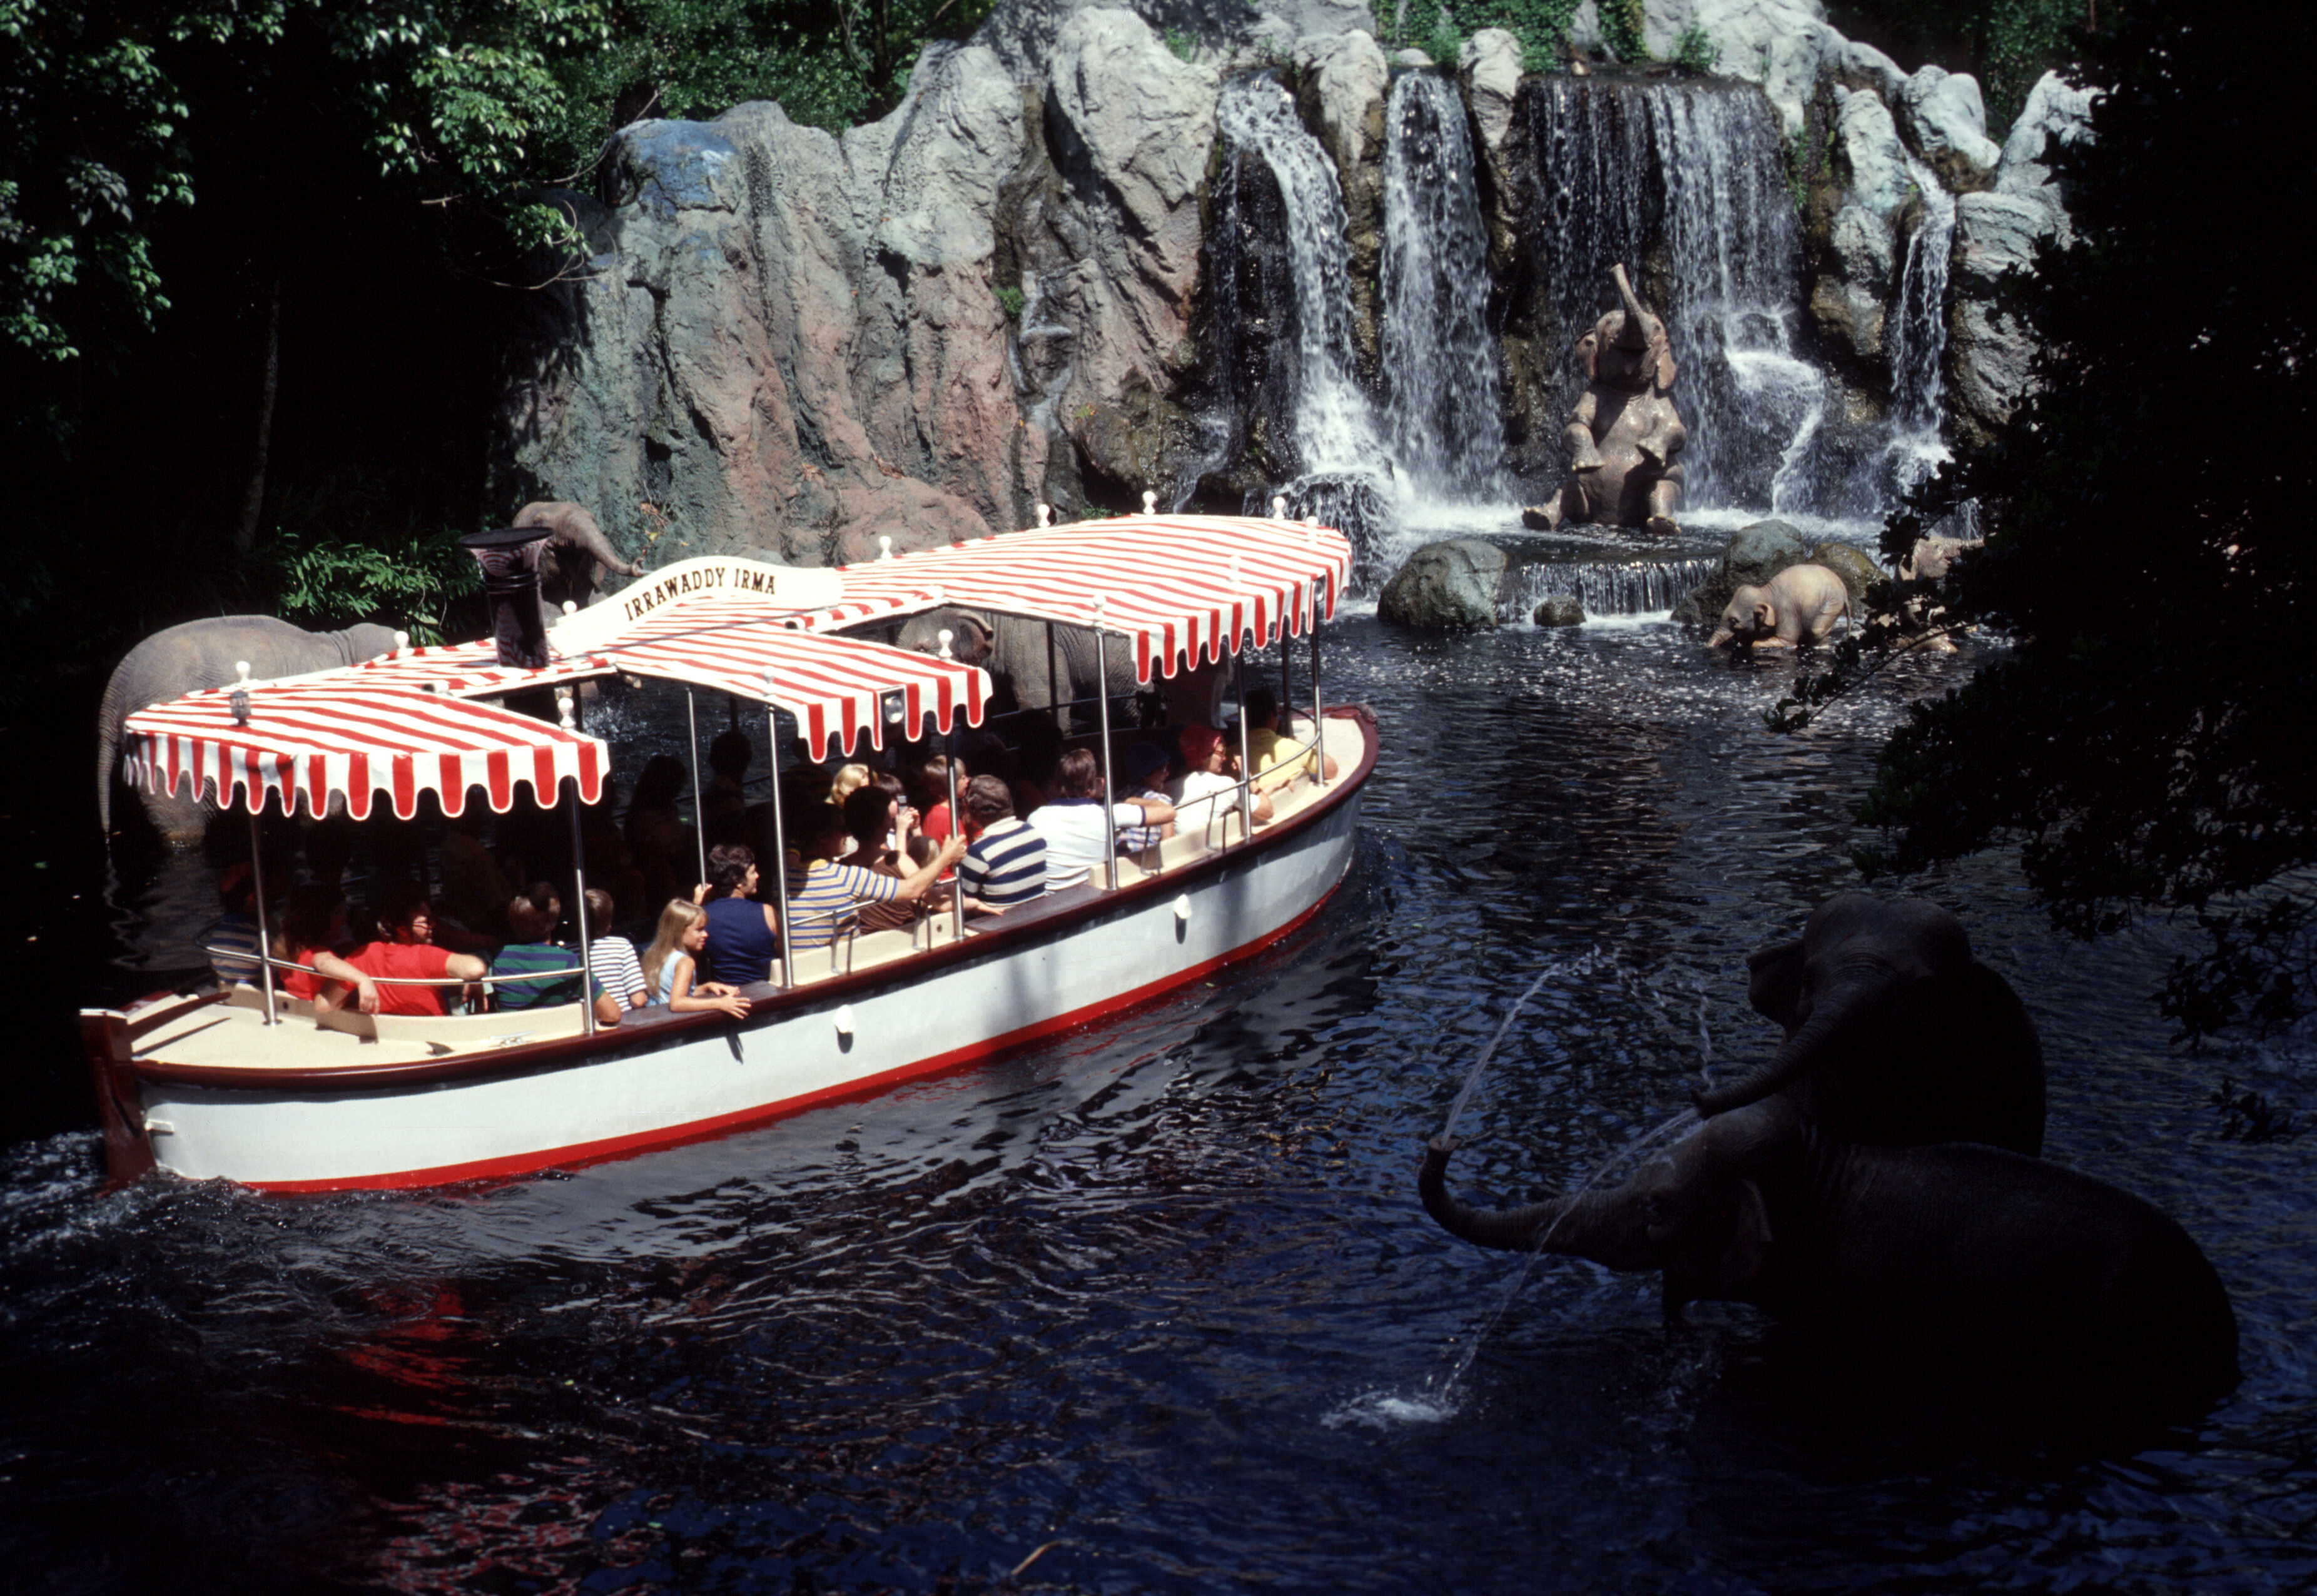 Terrific Tuesdays: Holiday Attractions - 6706.7KB